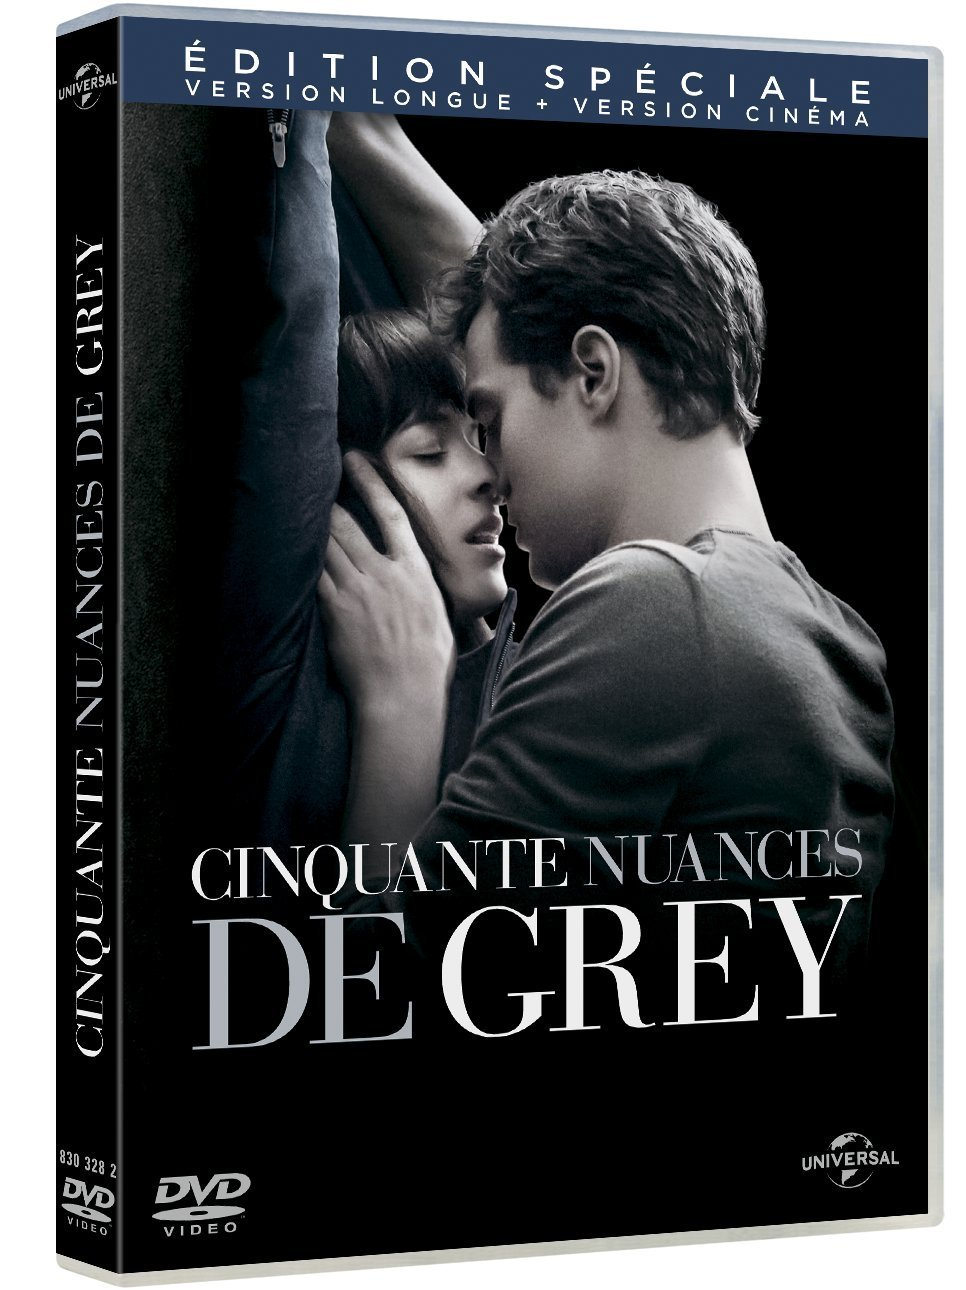 Critiques 50 Nuances De Grey Film : critiques, nuances, Critique, Nuances, CINEDINGUE